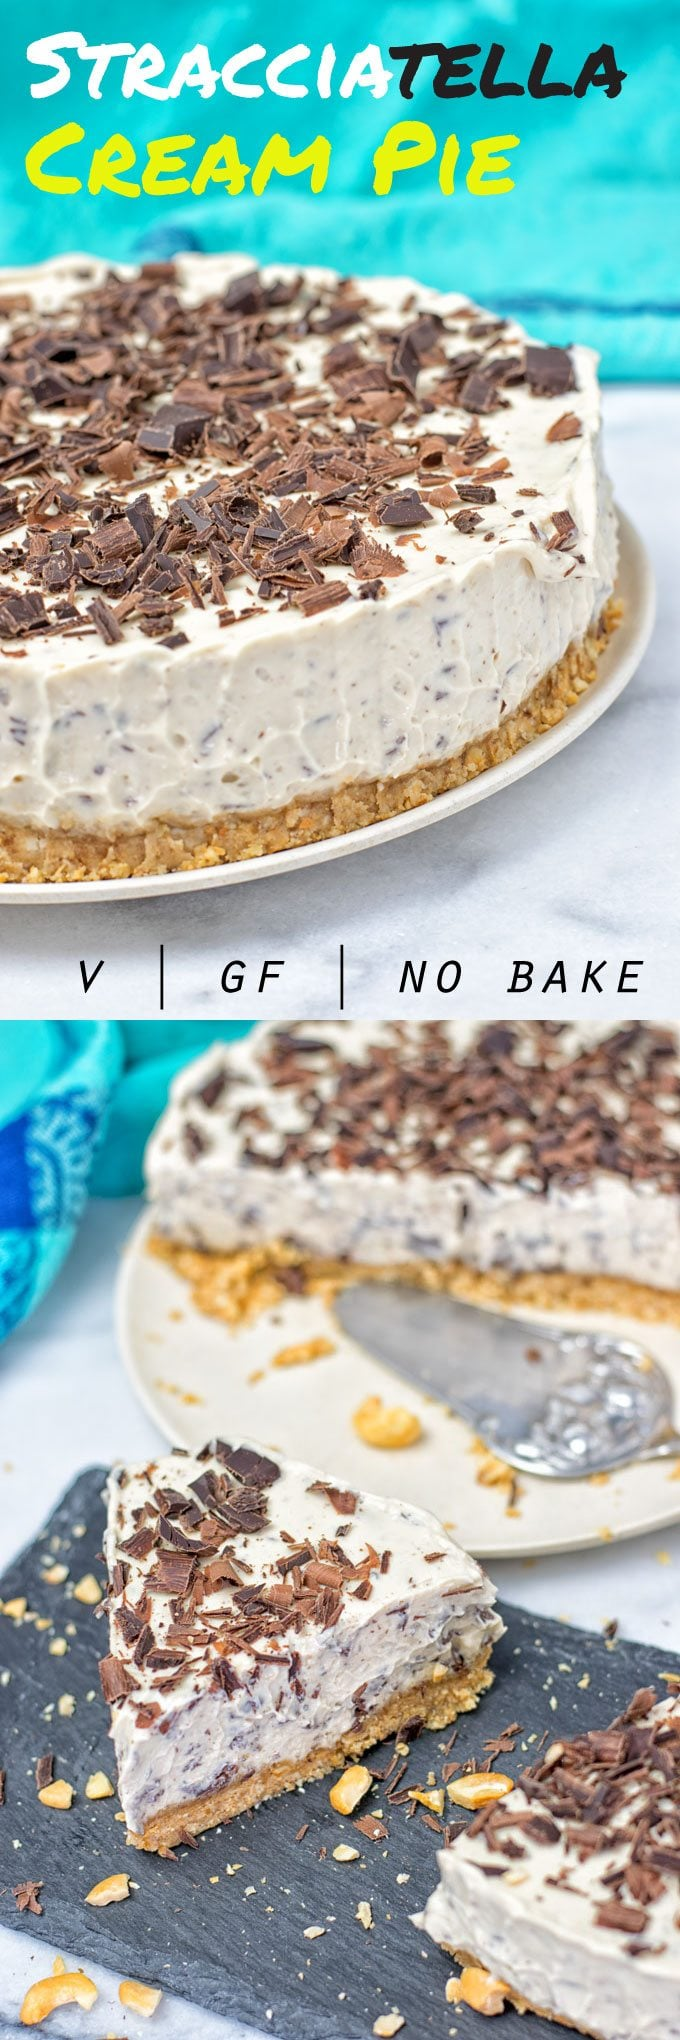 Collage of two pictures of the Stracciatella Cream Pie with recipe title text.